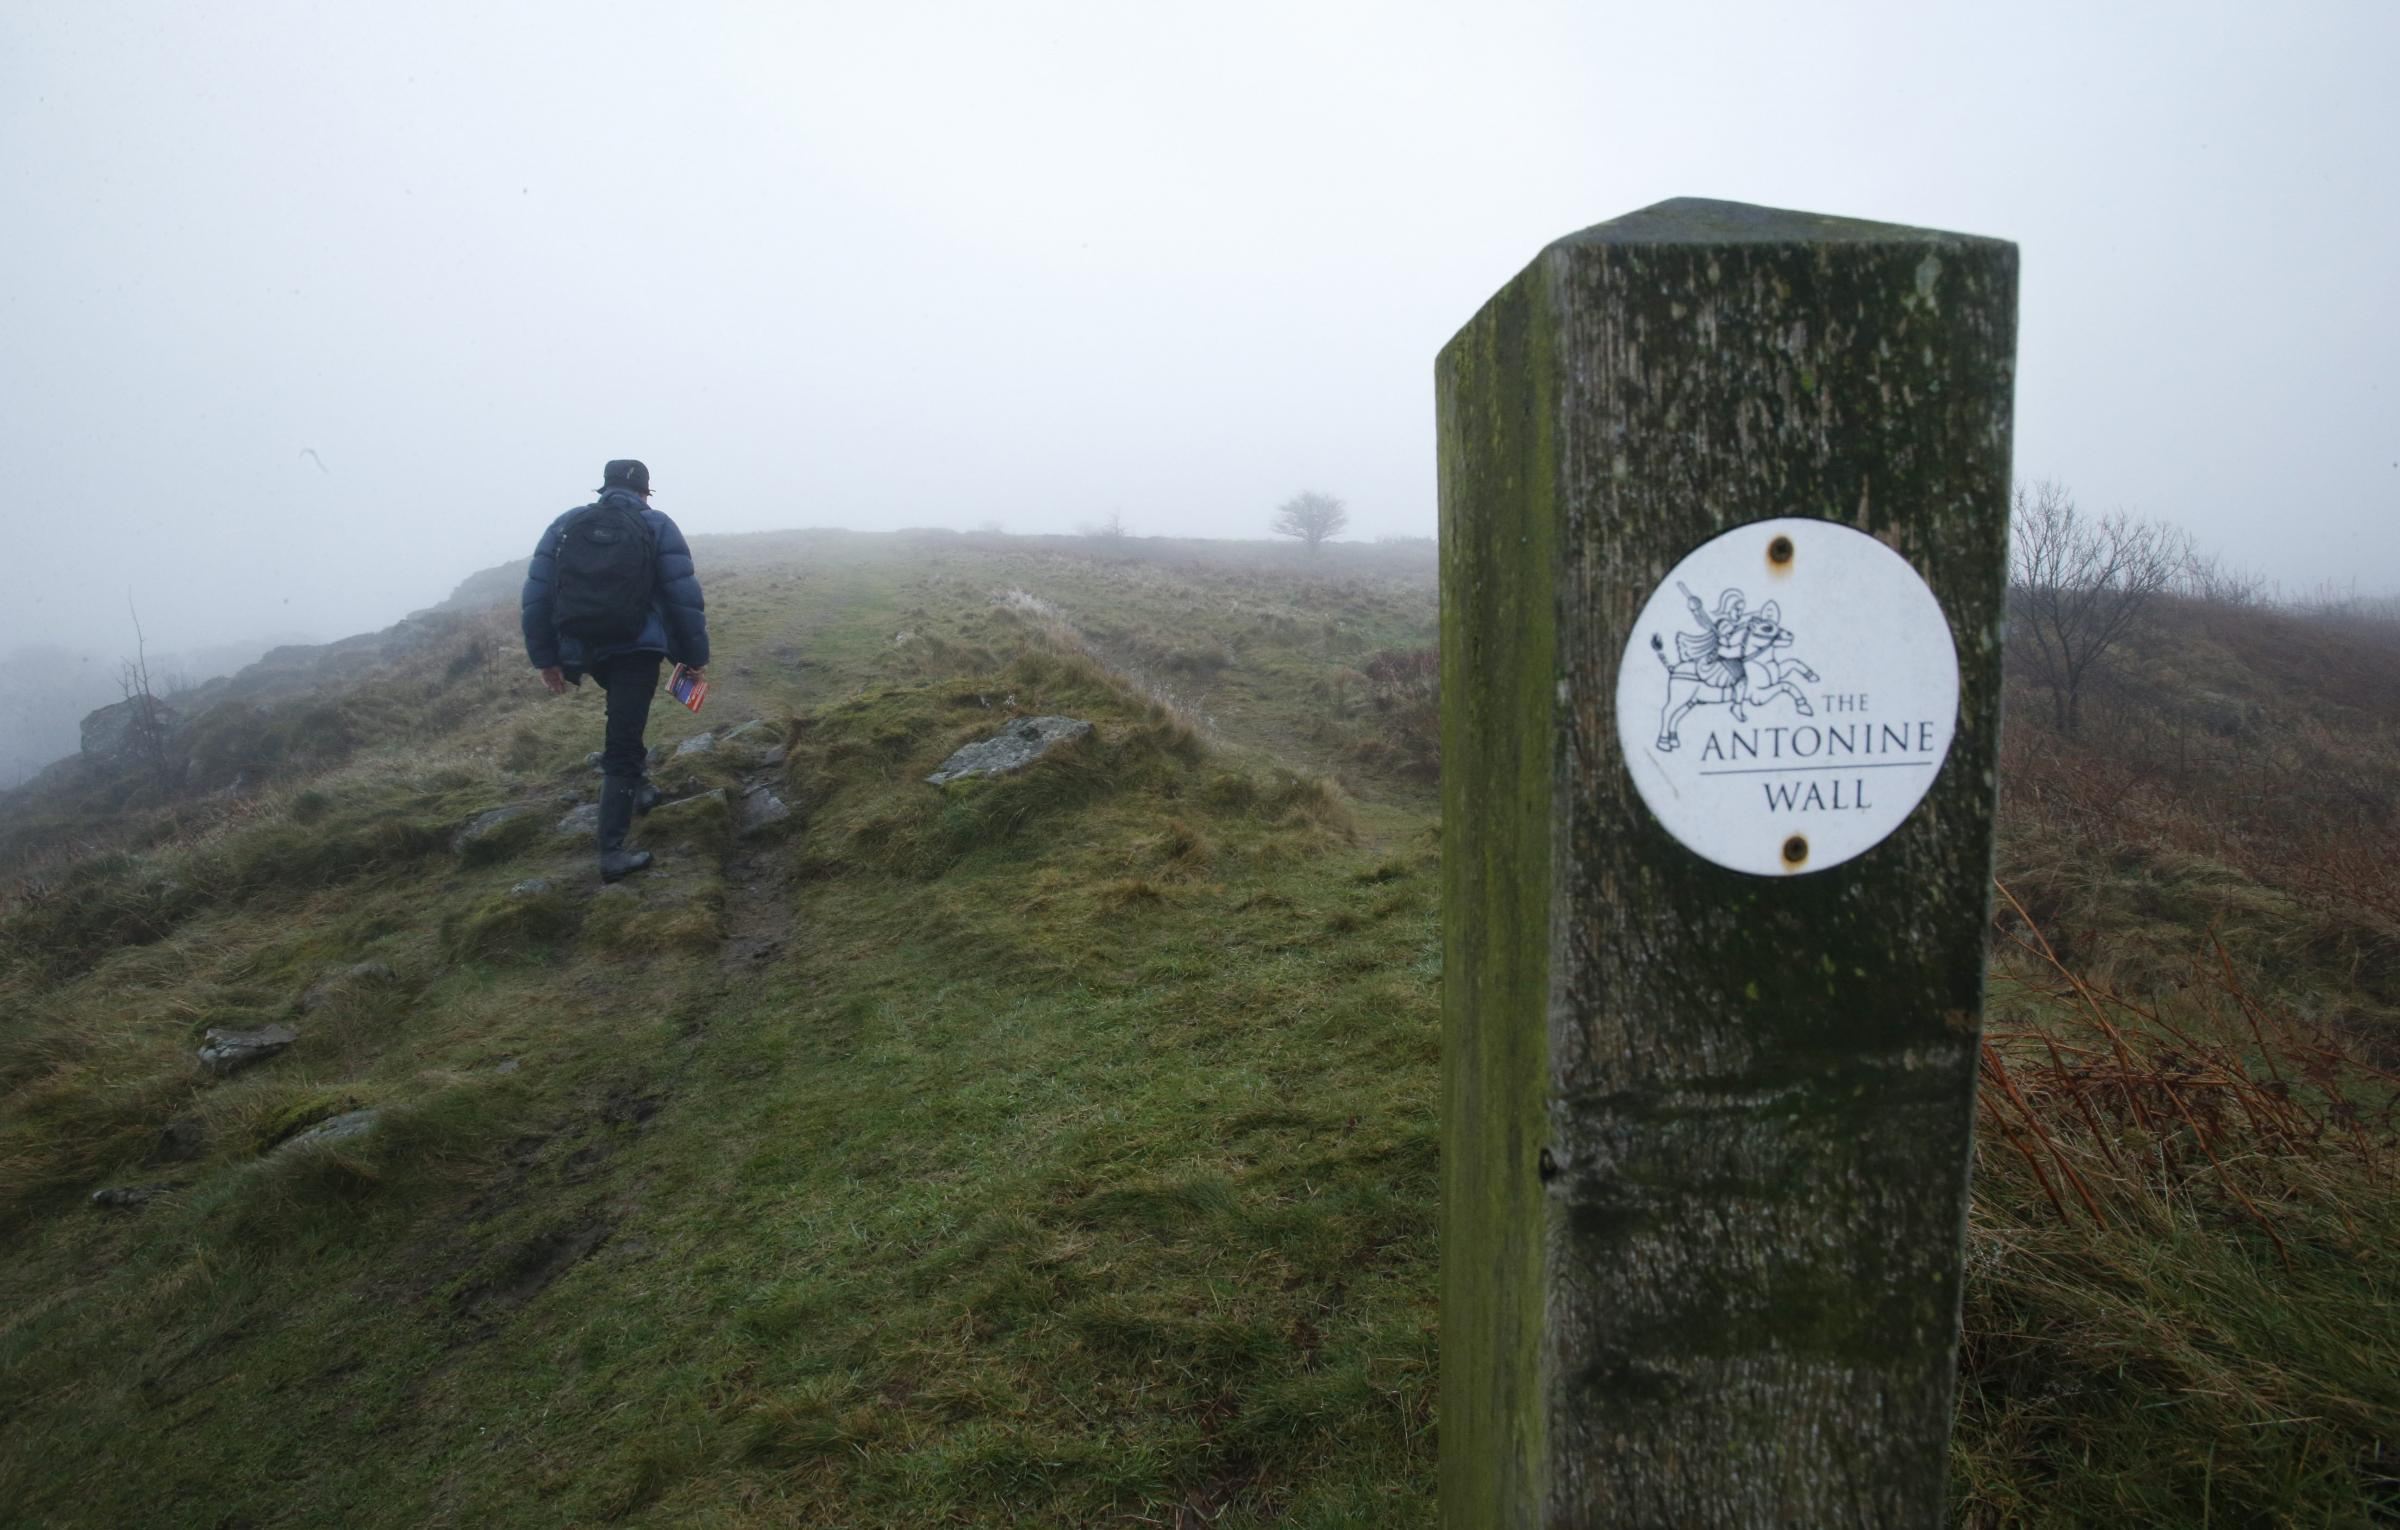 A walker pictured on the Antonine Wall walk on Croy Hill, North Lanarkshire. The Antonine wall walk is part of the new John Muir Way, a new long distance path that runs from Dunbar in East Lothian to Helensburgh. The John Muir way opens in April 2014.